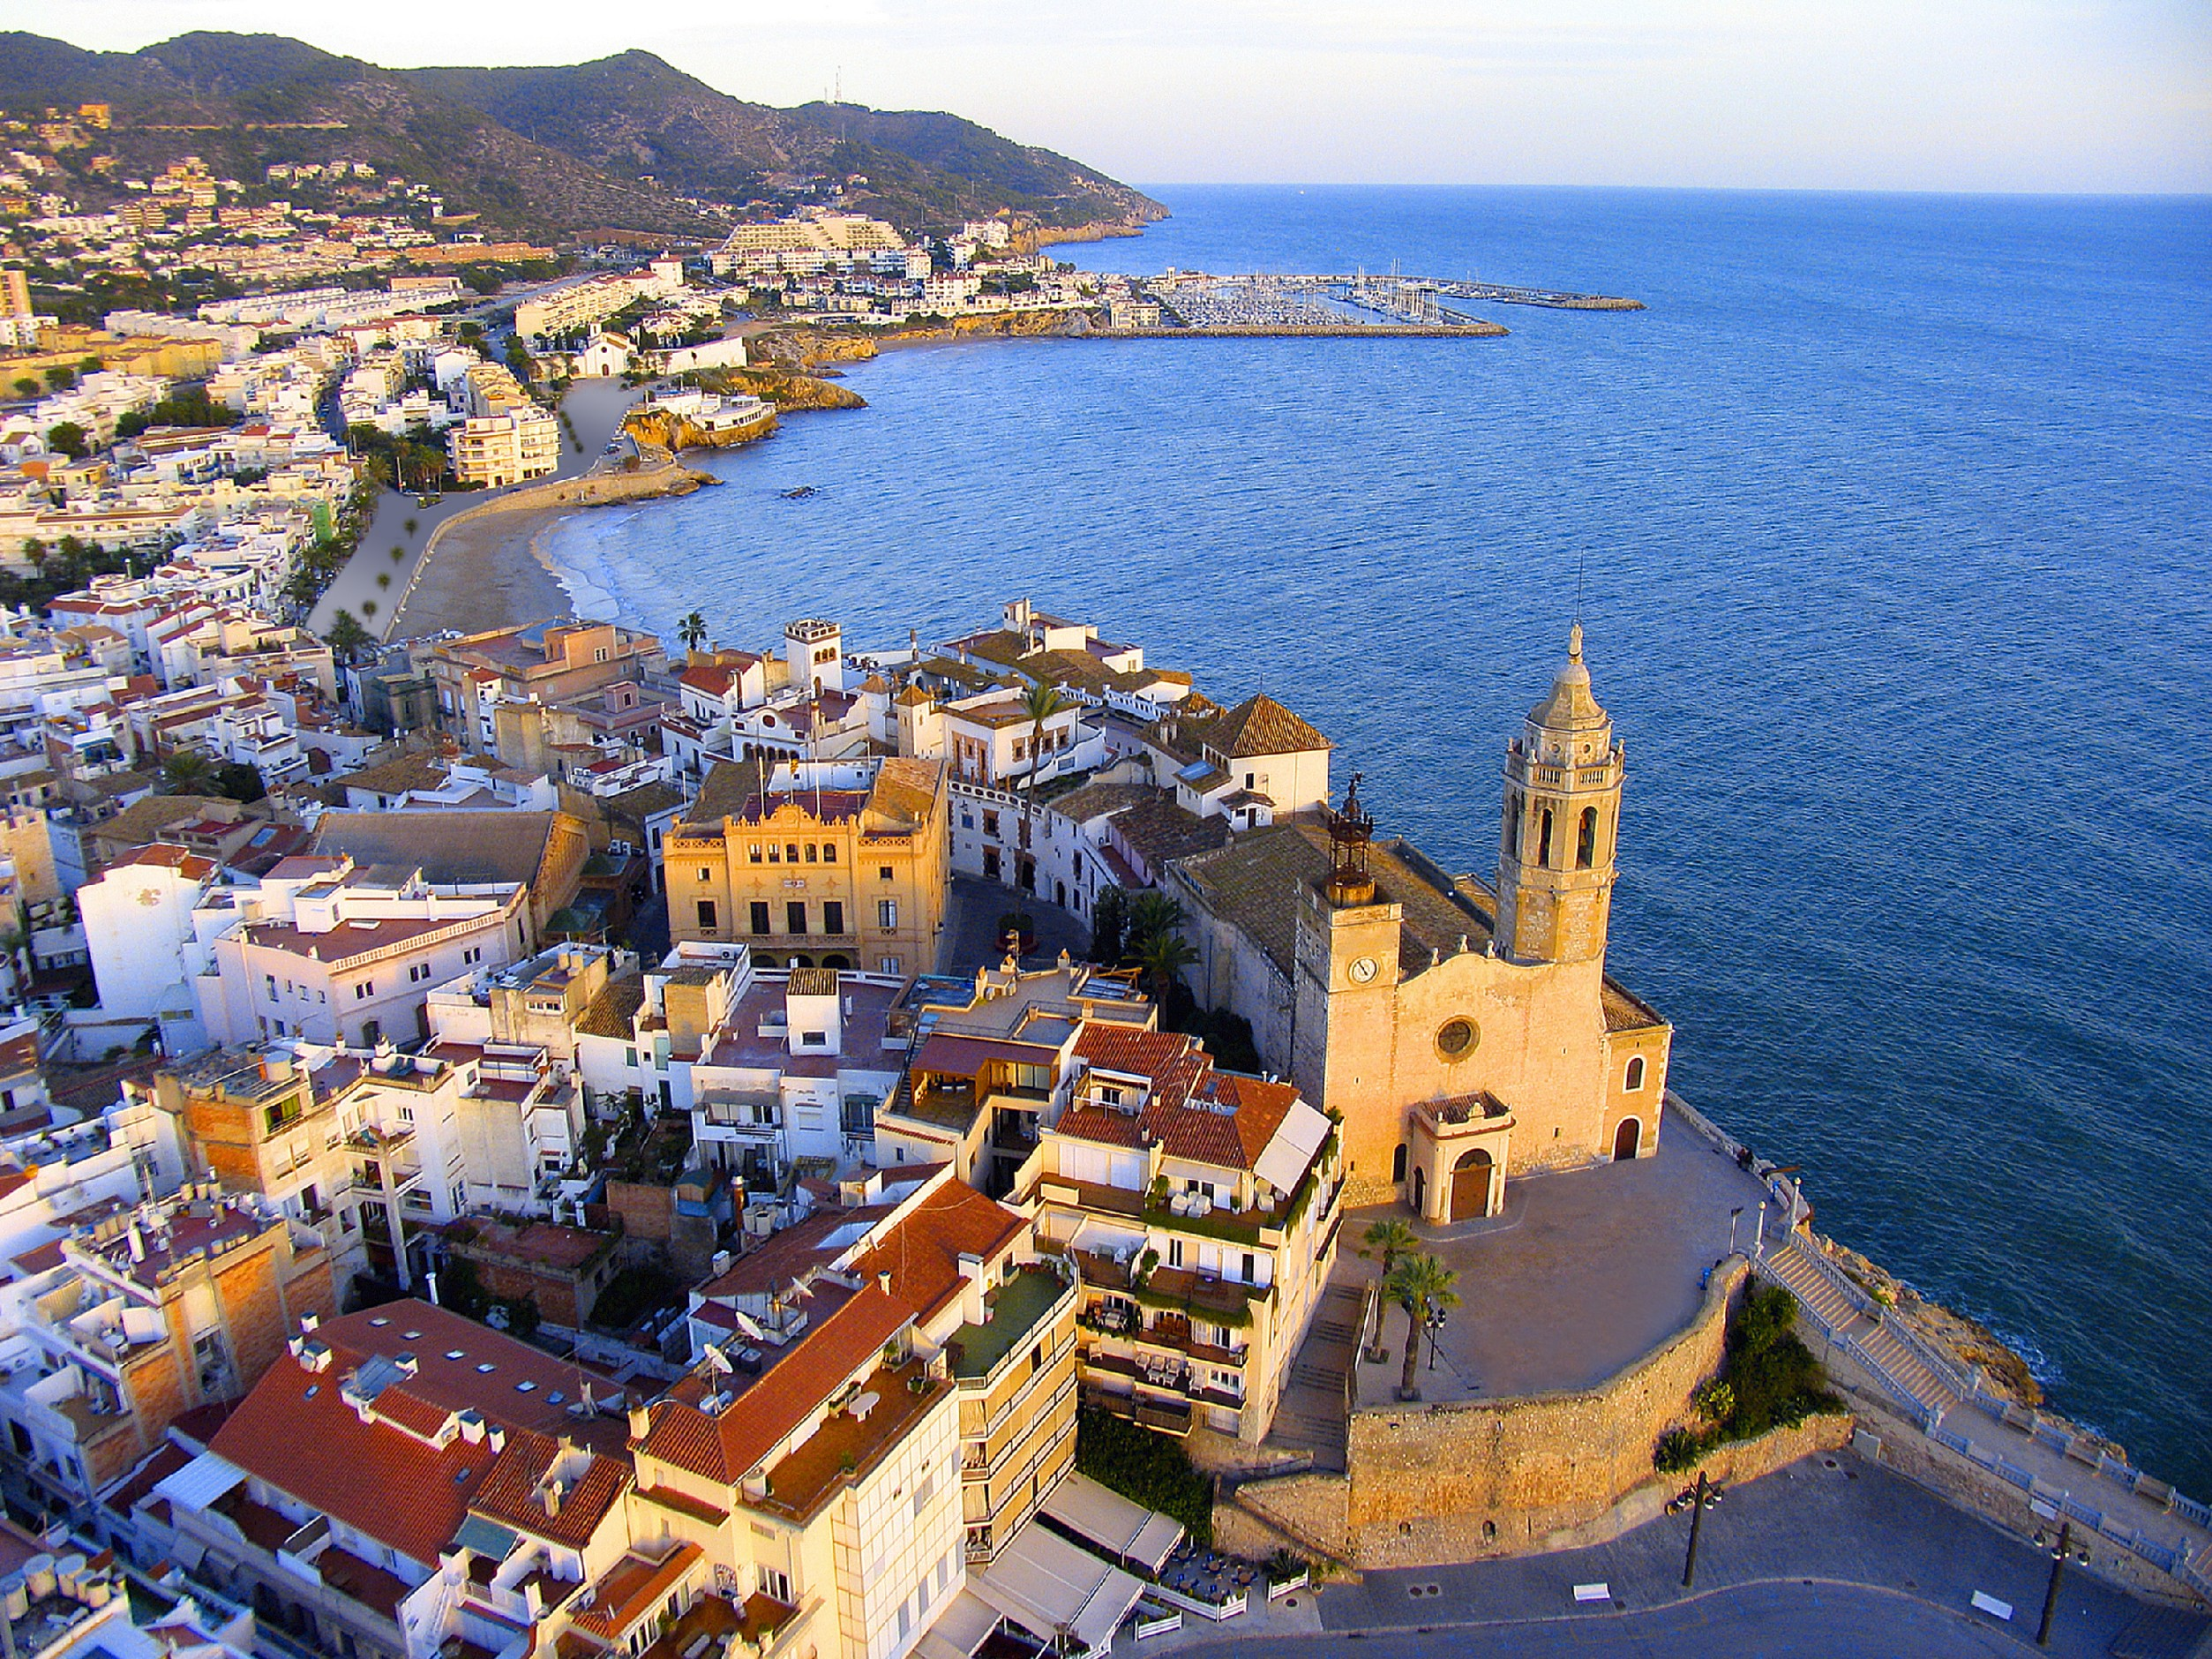 Image courtesy of campingsitges.com